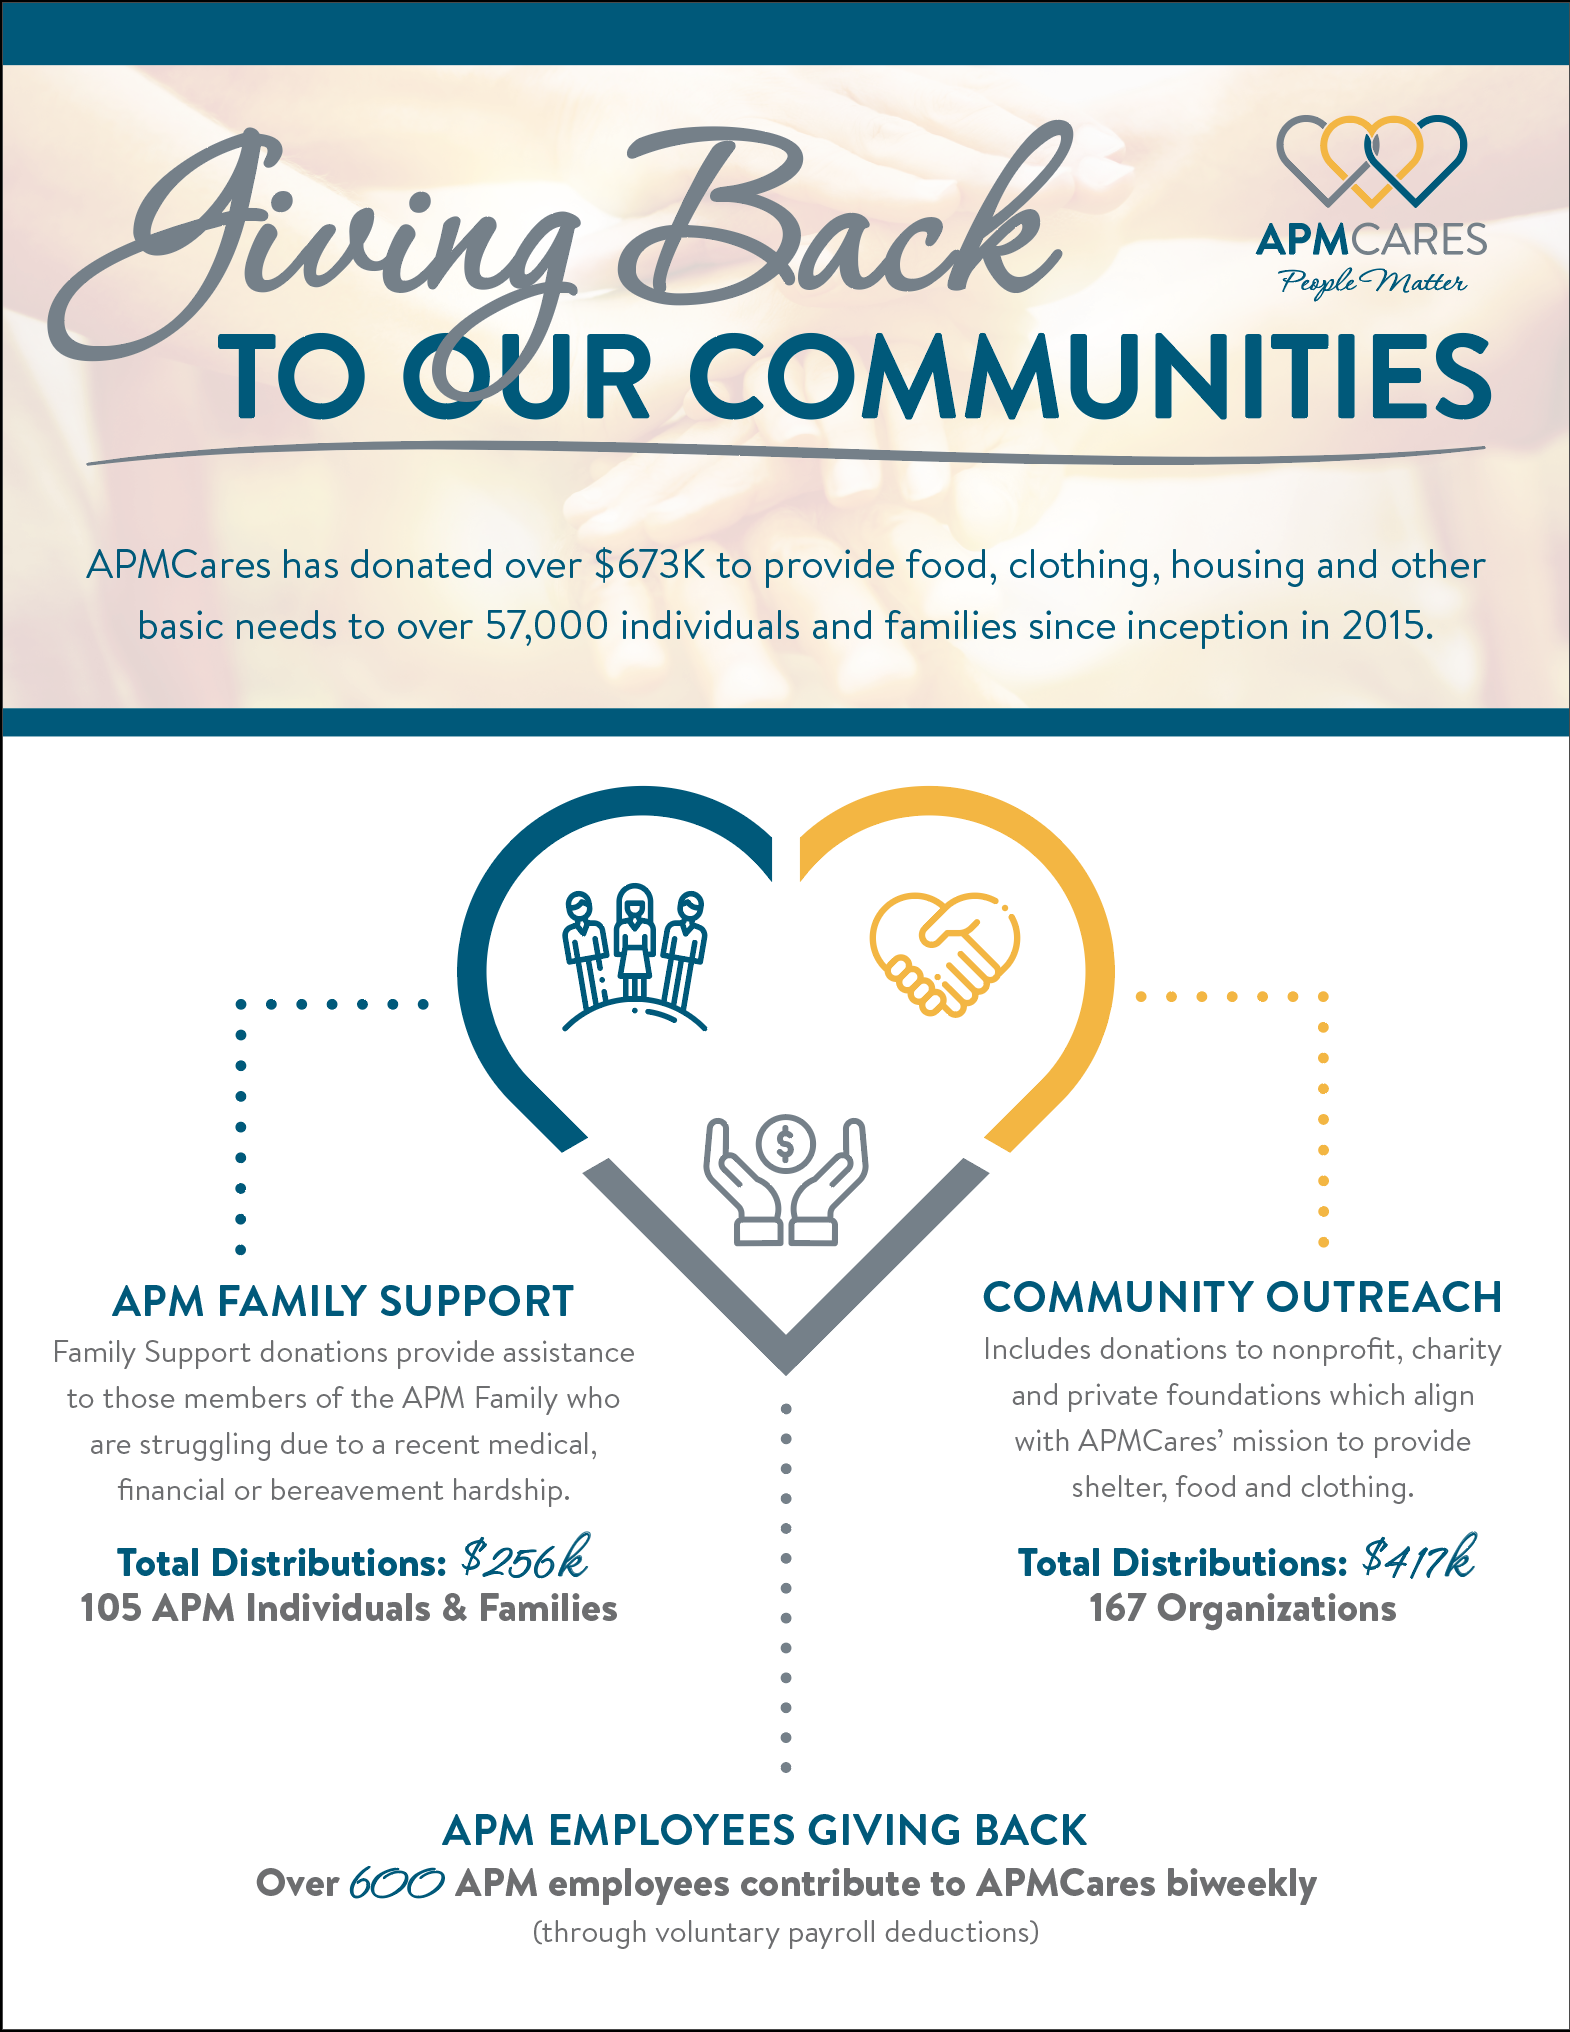 APMCares Giving Back